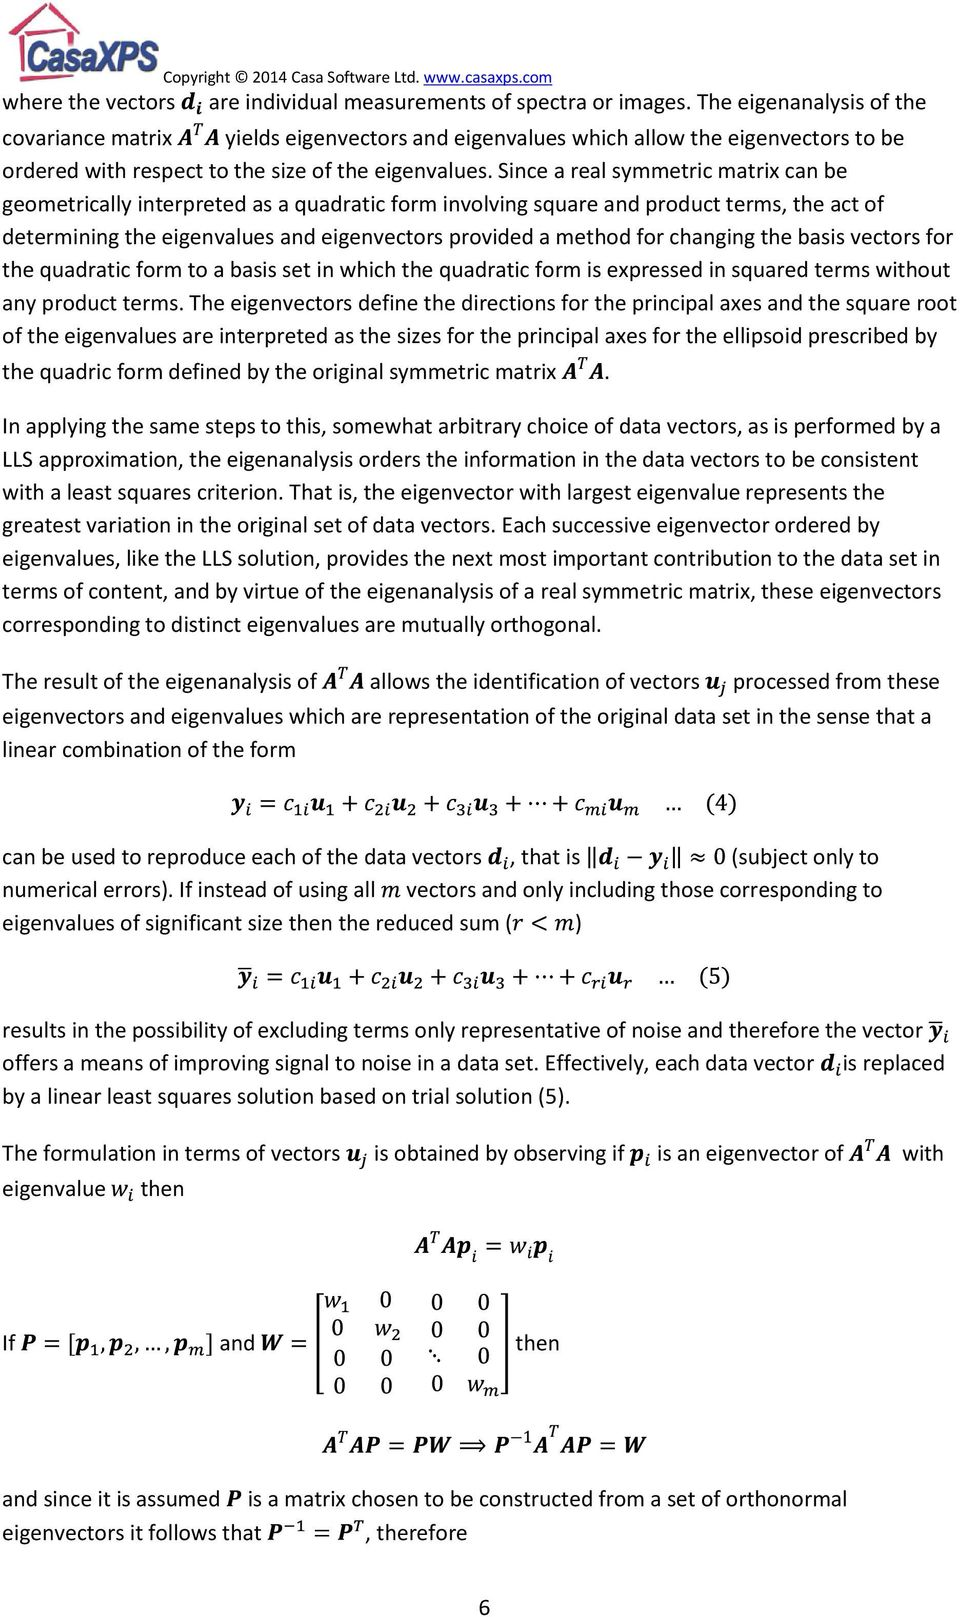 Since a real symmetric matrix can be geometrically interpreted as a quadratic form involving square and product terms, the act of determining the eigenvalues and eigenvectors provided a method for